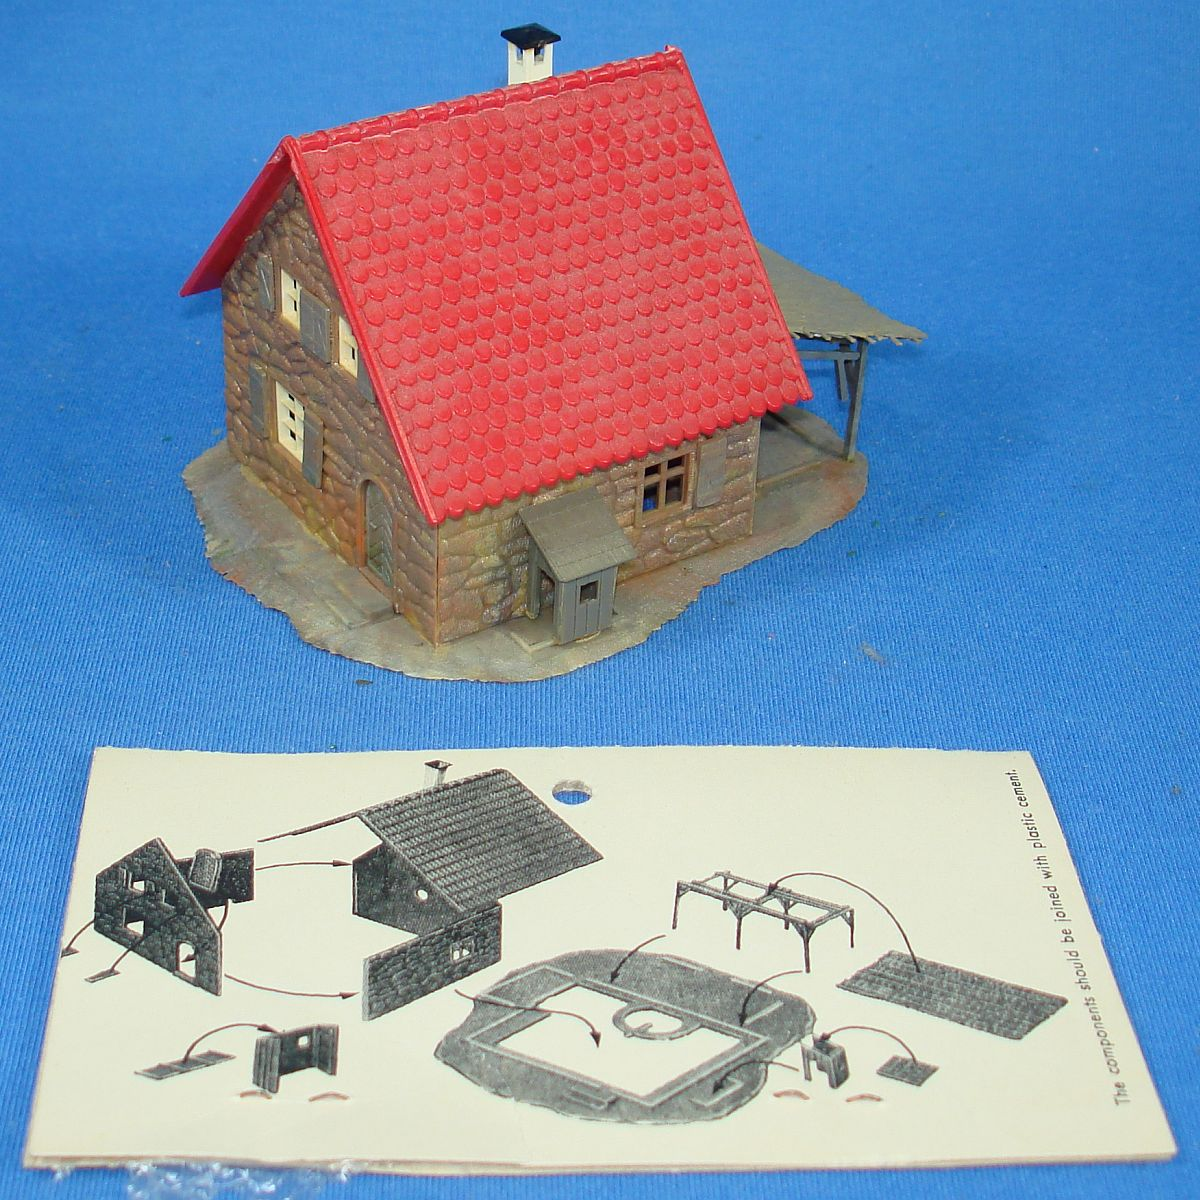 Faller Kaybee Kramer Brothers Trackside Structures HO Scale Assembly Kit Stone House 6278 Instructions